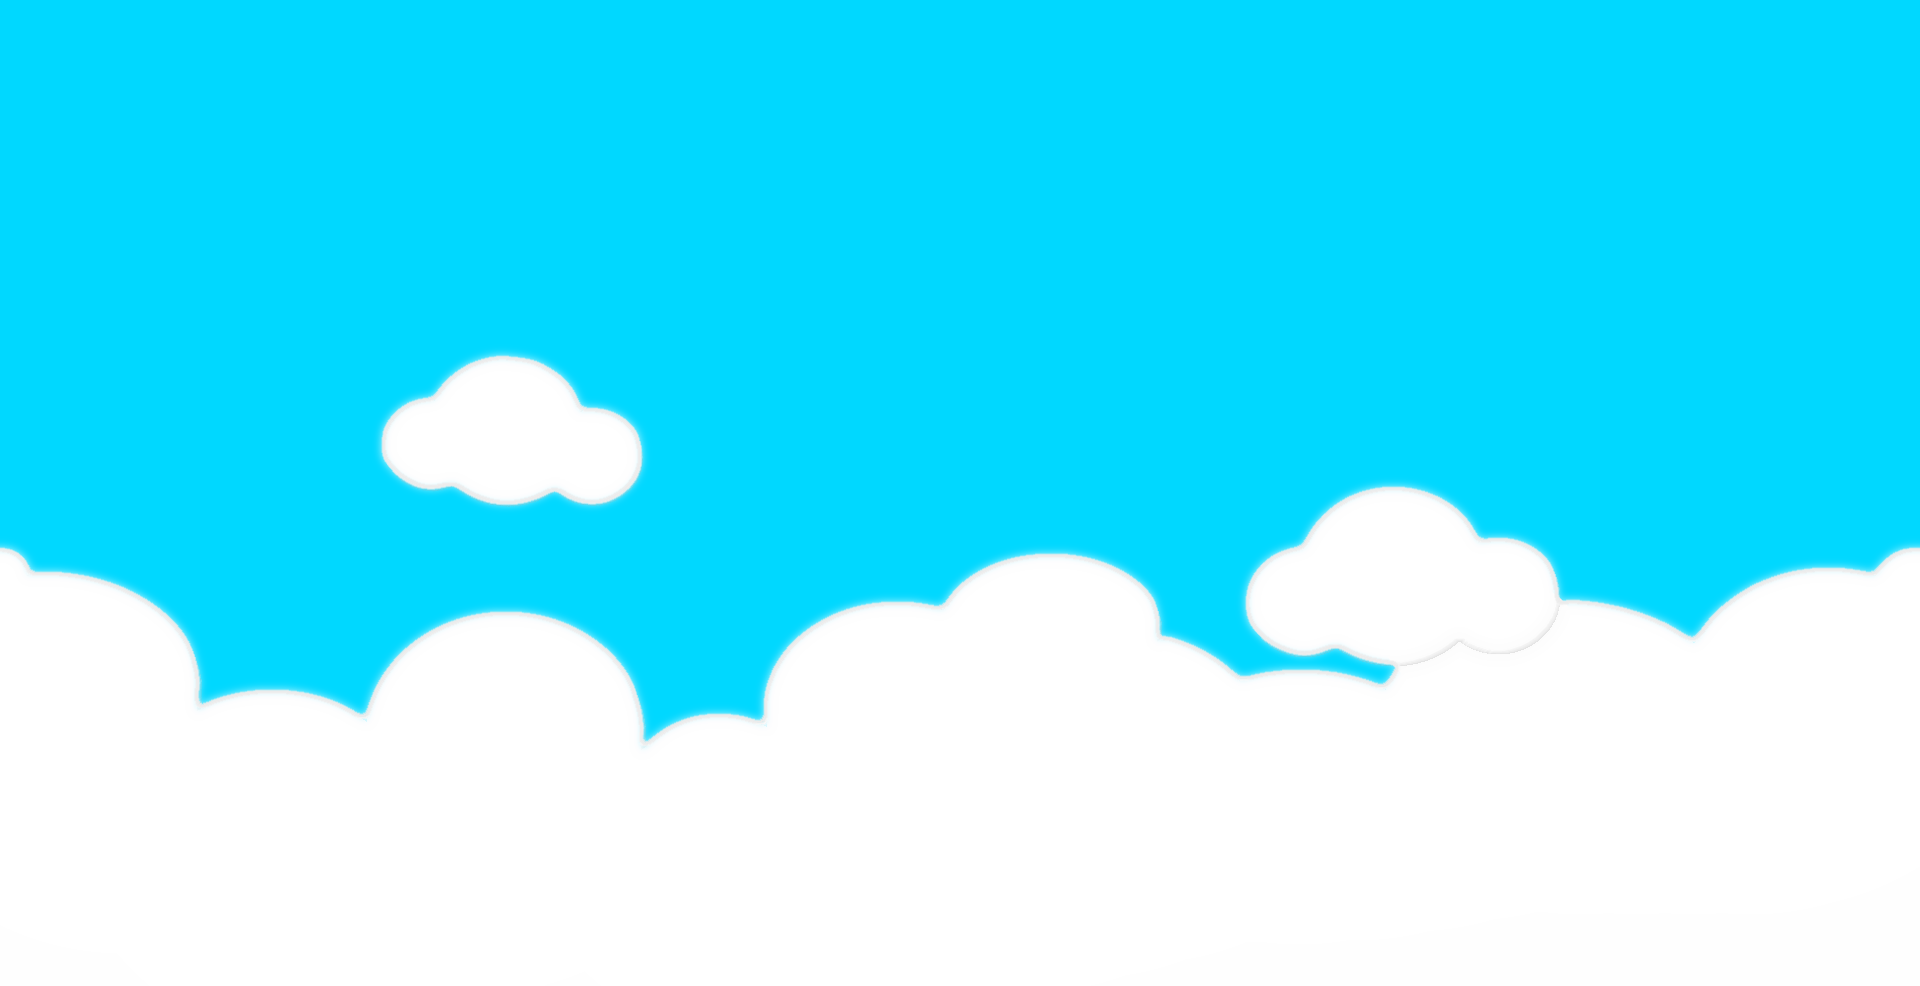 Create Name Animation Wallpaper Cartoony Cloud Images Opengameart Org